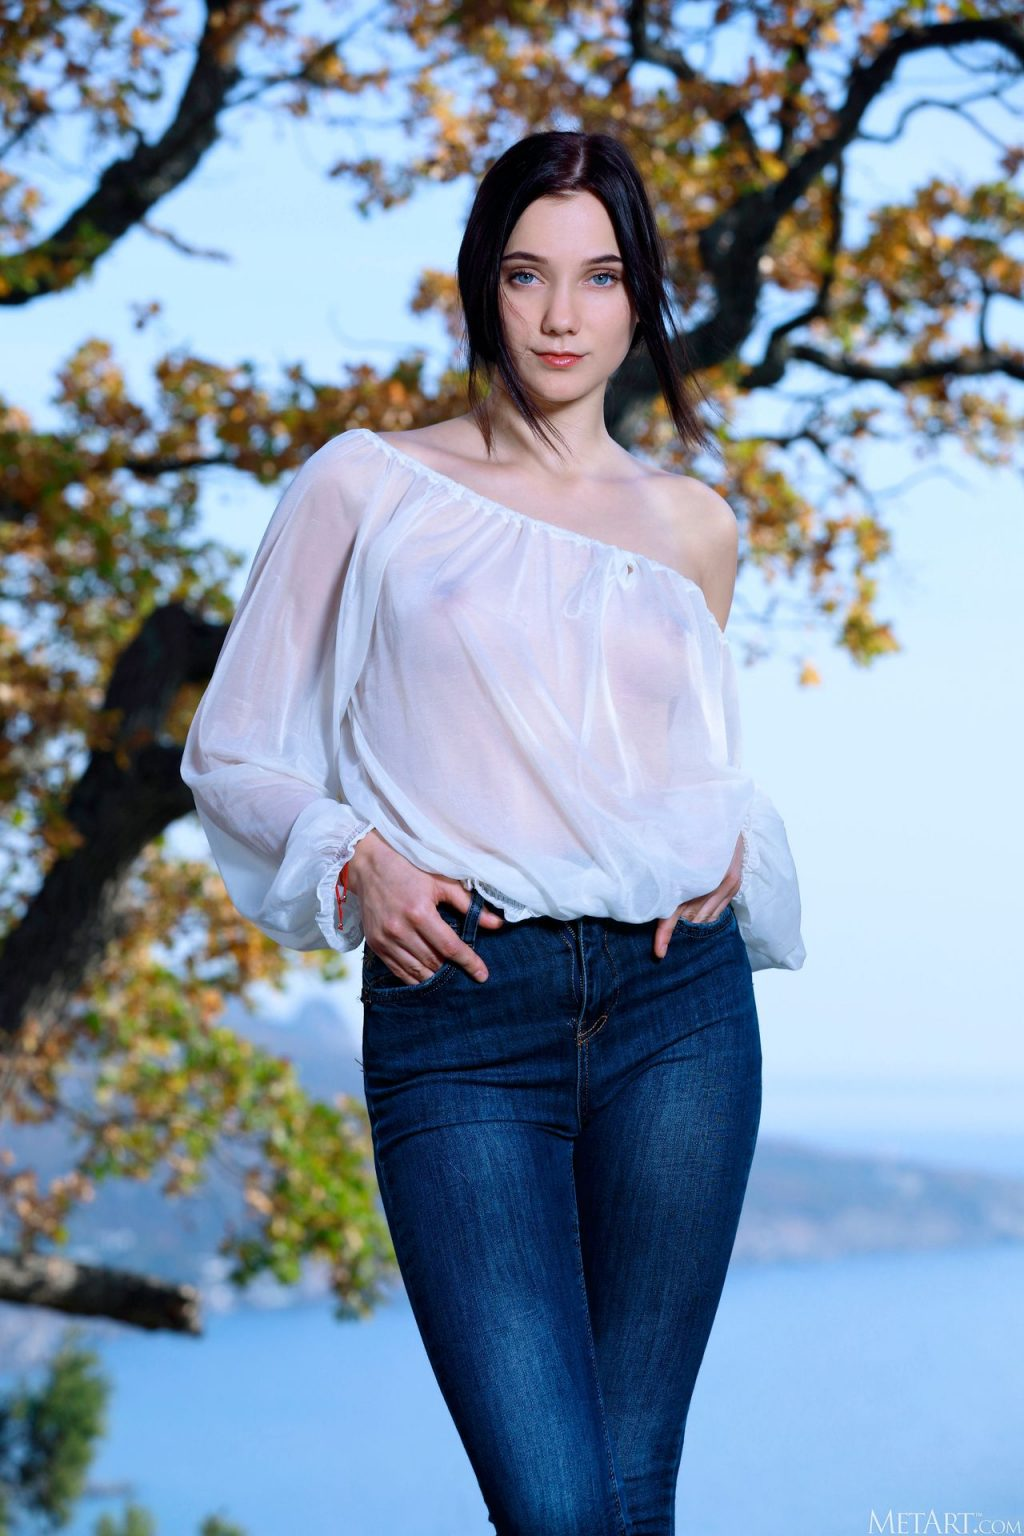 Polly Pure Nude – Blue Jeans (120 Photos)